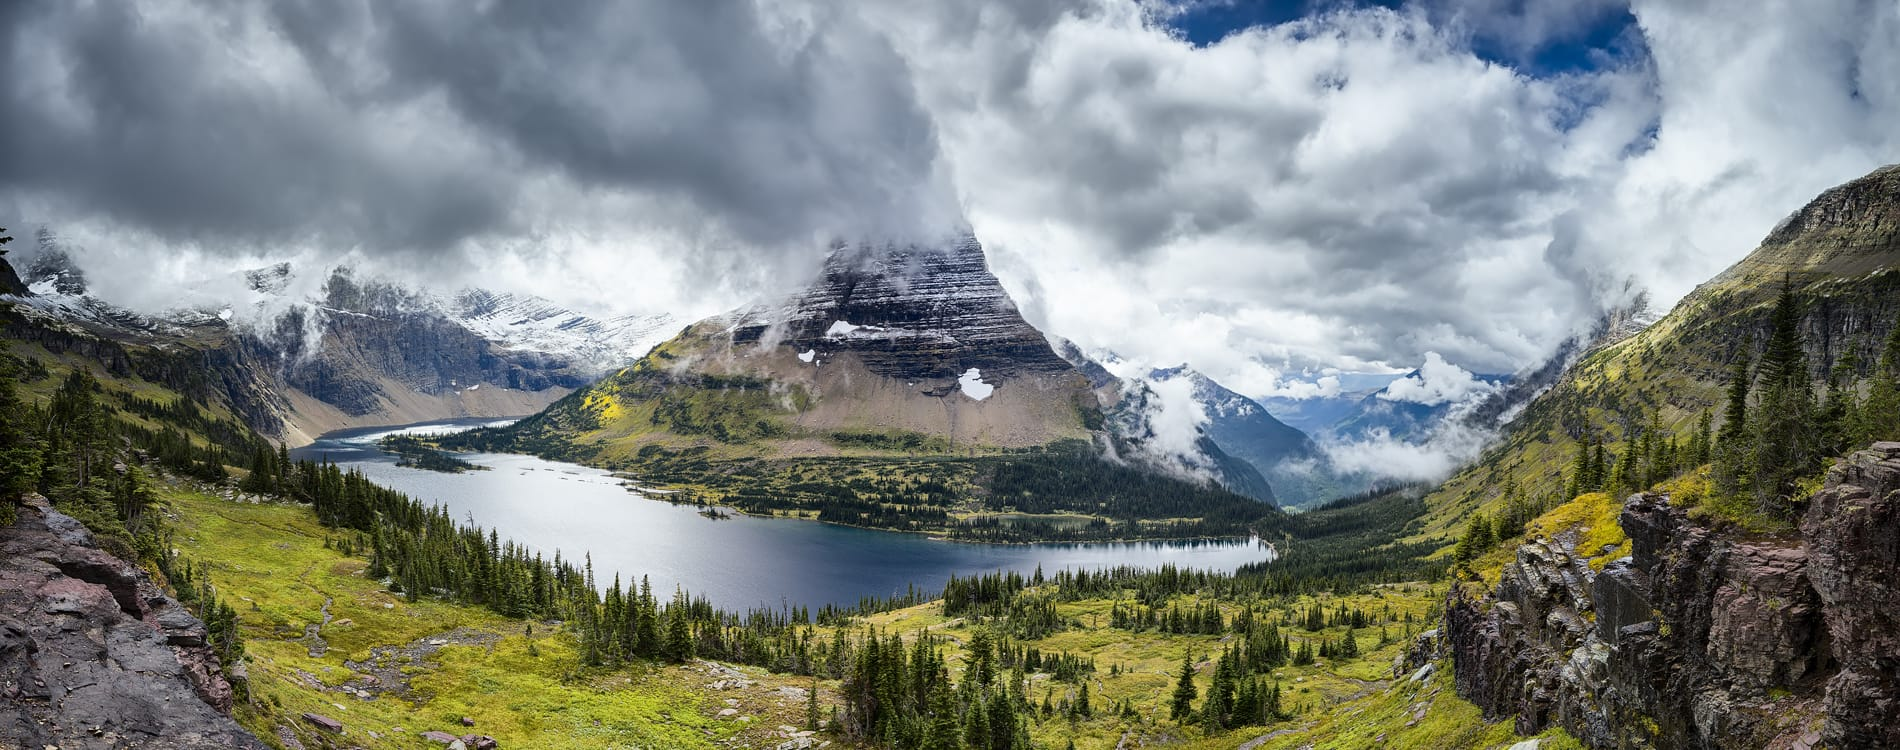 Glacier National Park - Hidden Lake Overlook